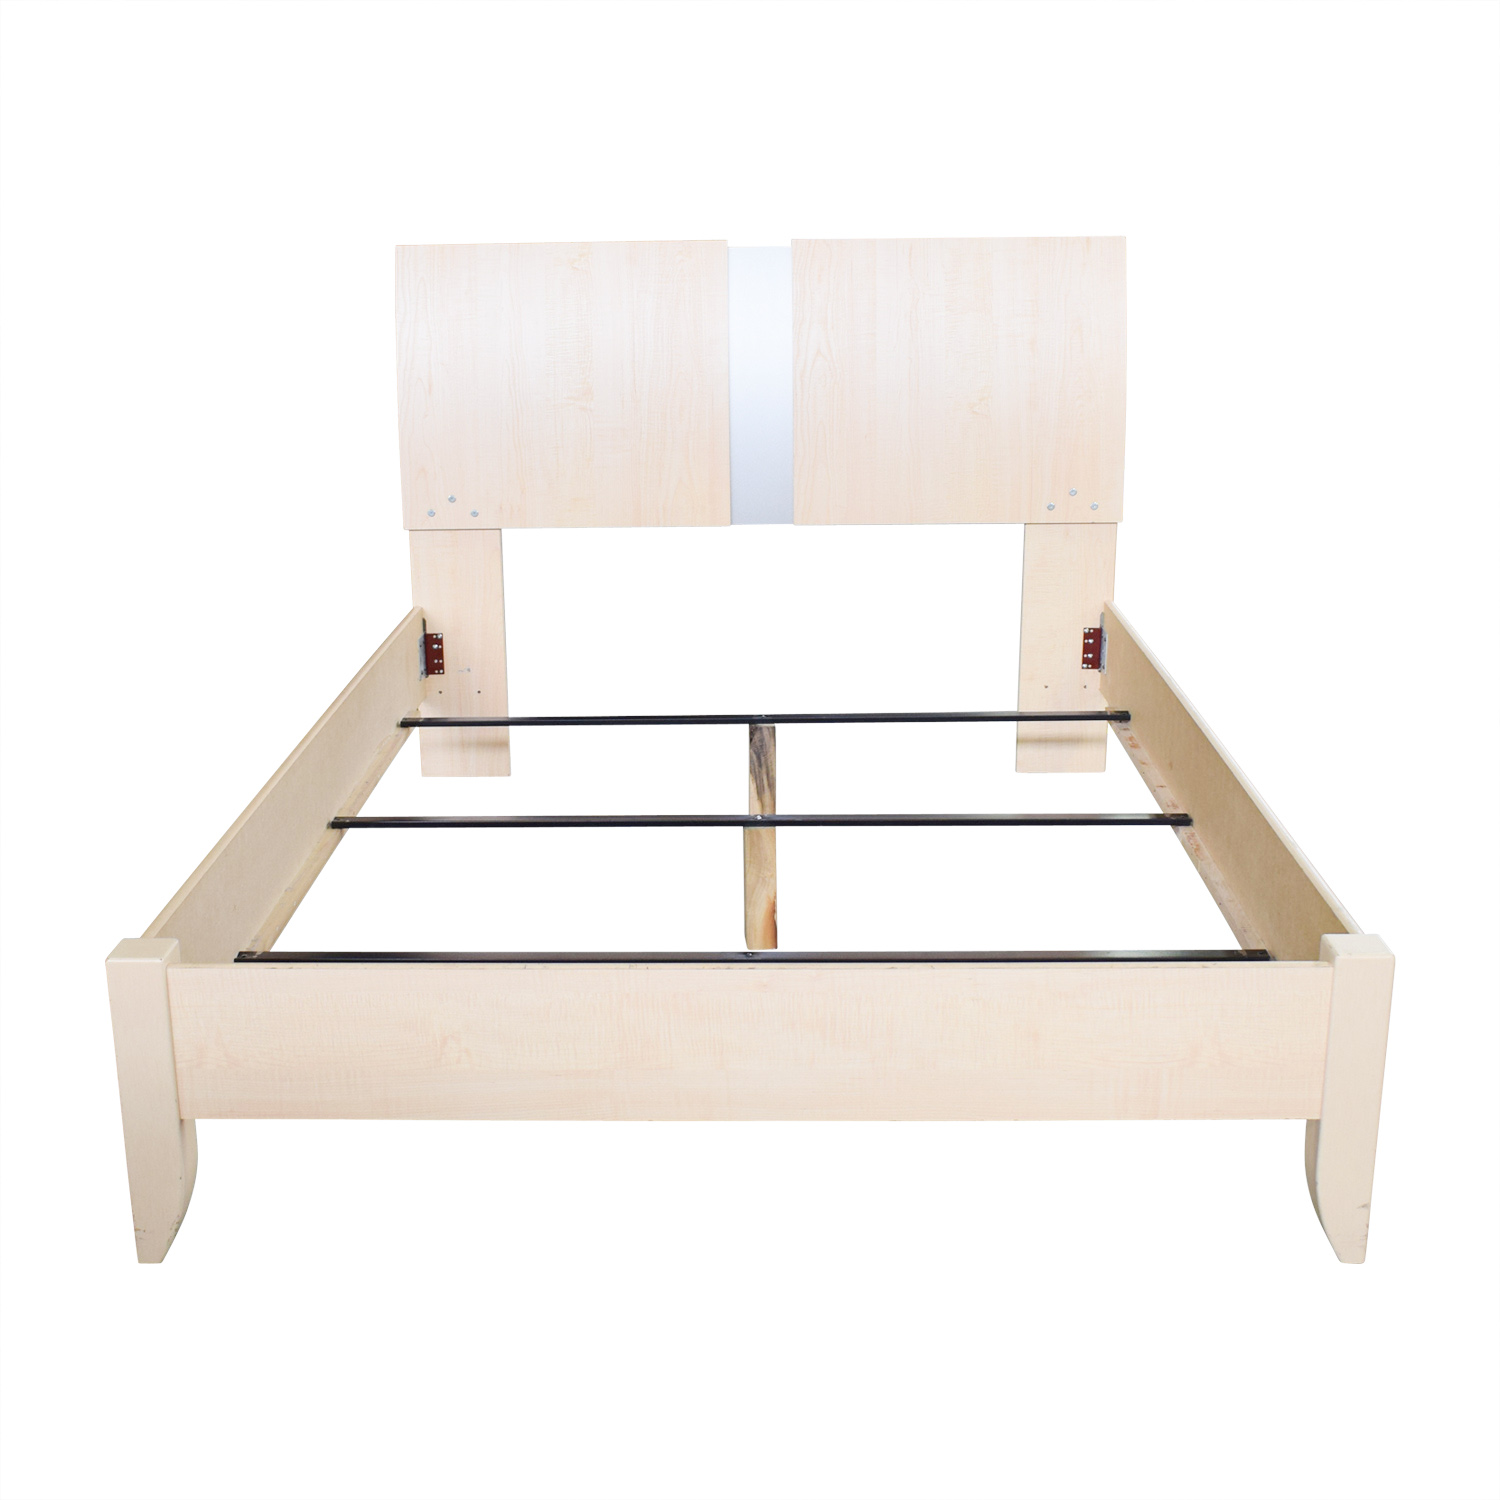 Ashley Furniture Ashley Furniture Natural Wood and Chrome Queen Bed Frame nj